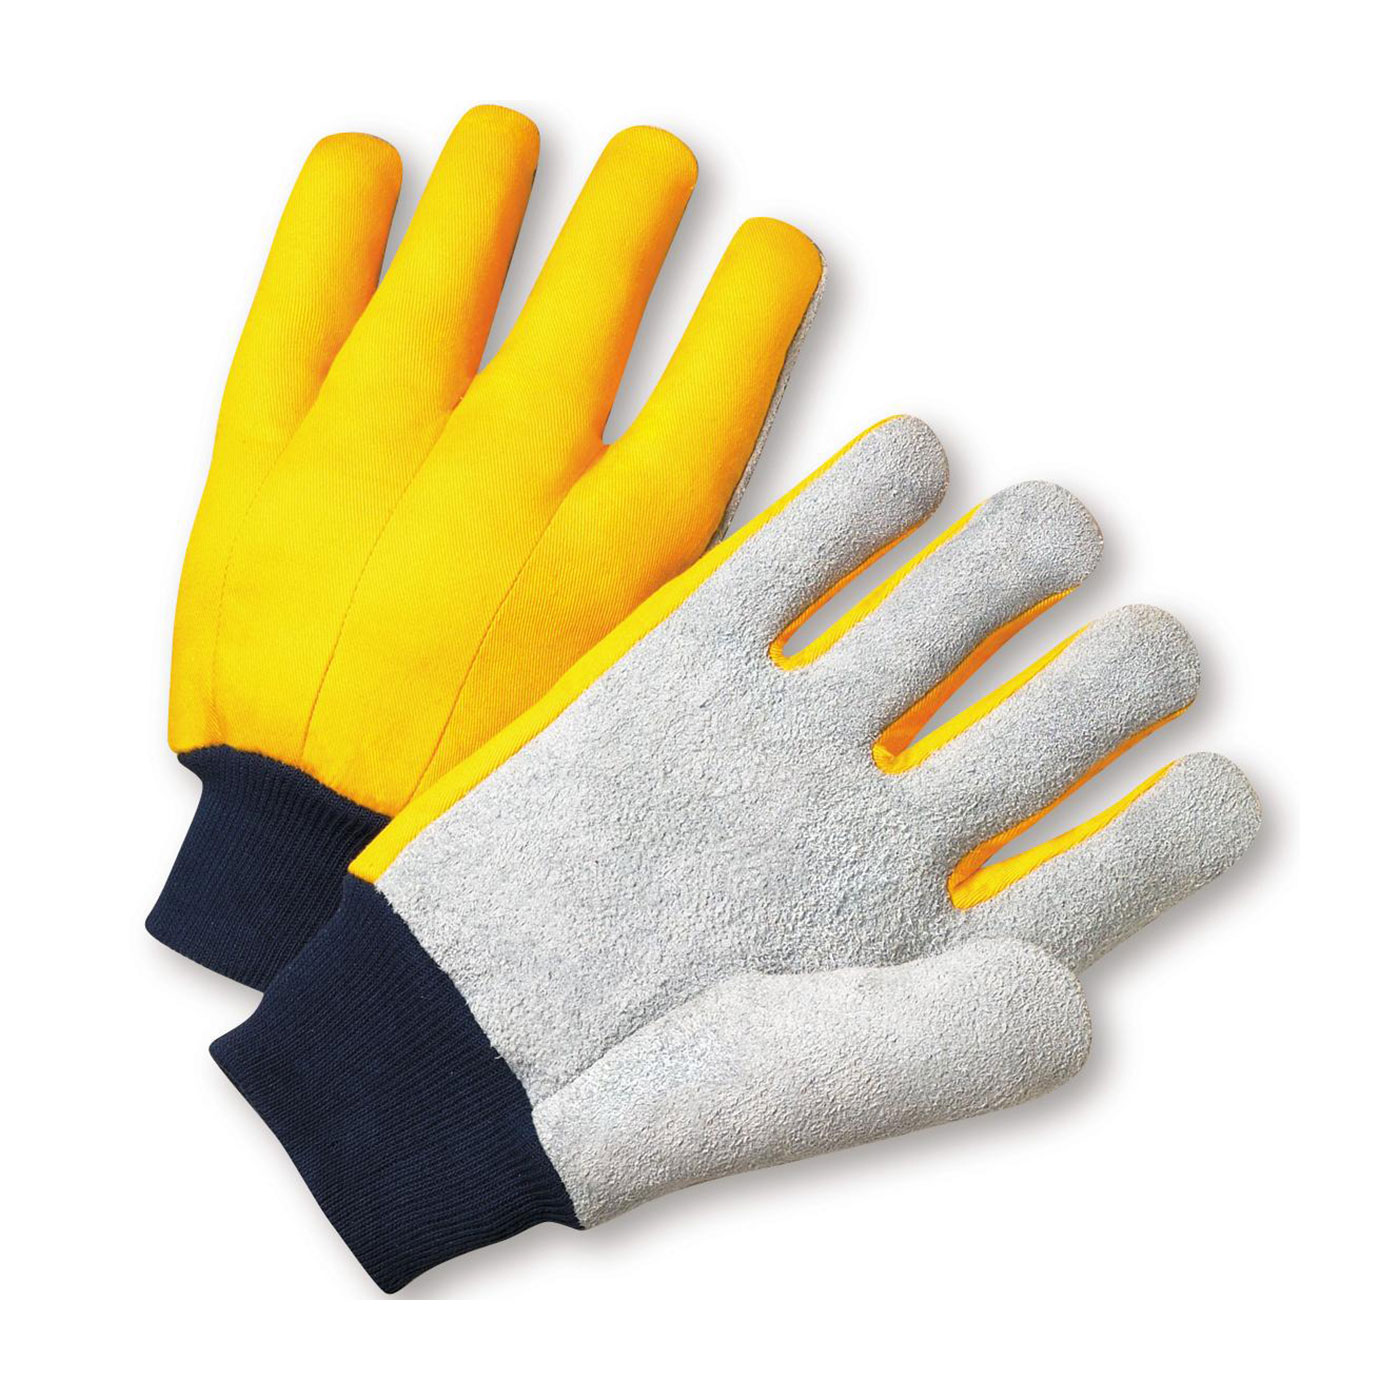 Select Grade Cowhide Leather Palm Glove with Fabric Back, Yellow, MENS